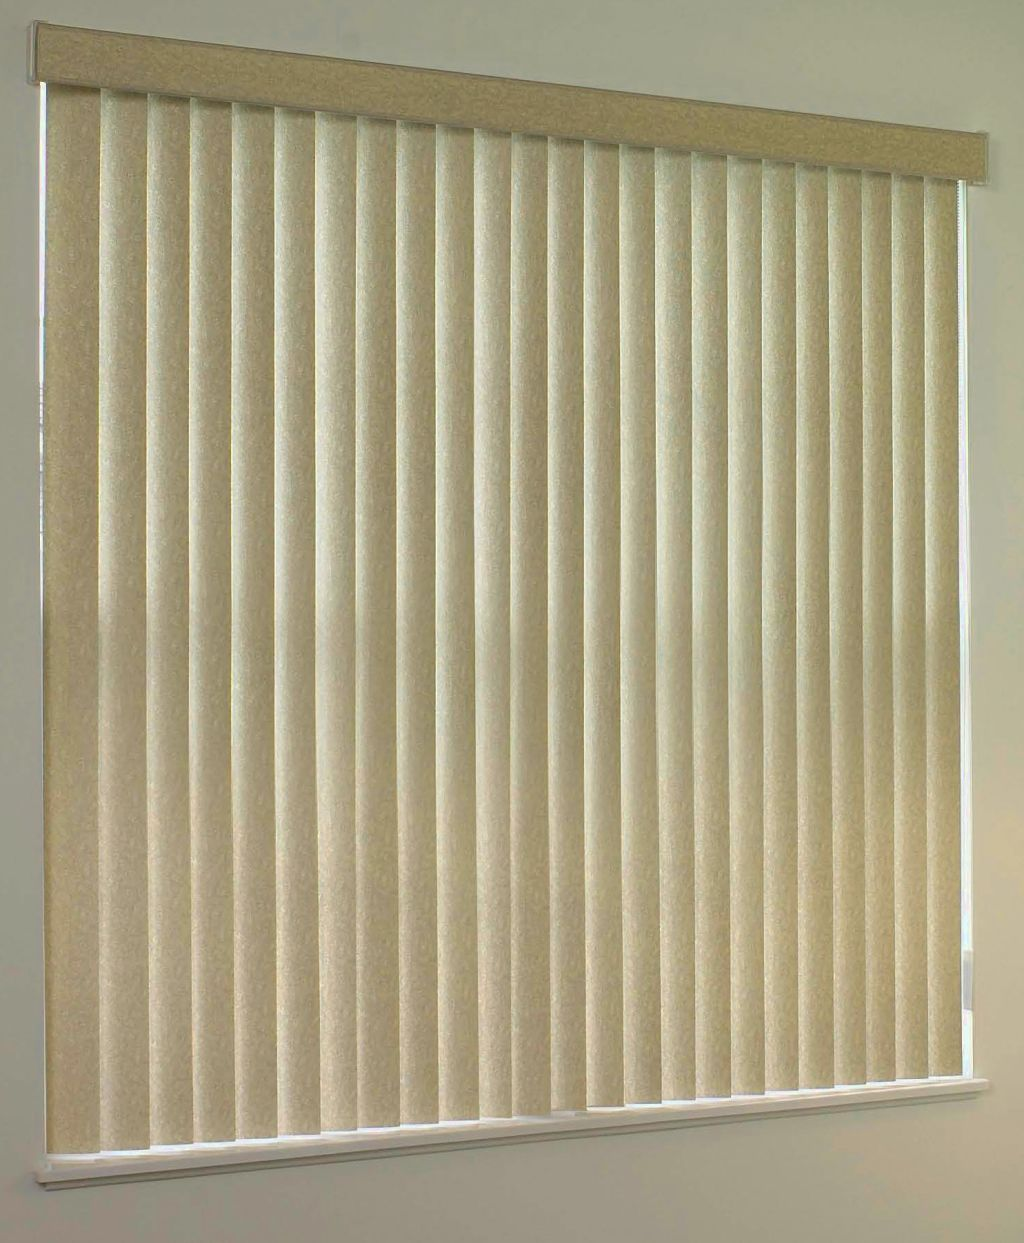 Vertical Blinds Ideas From Lowes Vertical Blinds For Windows